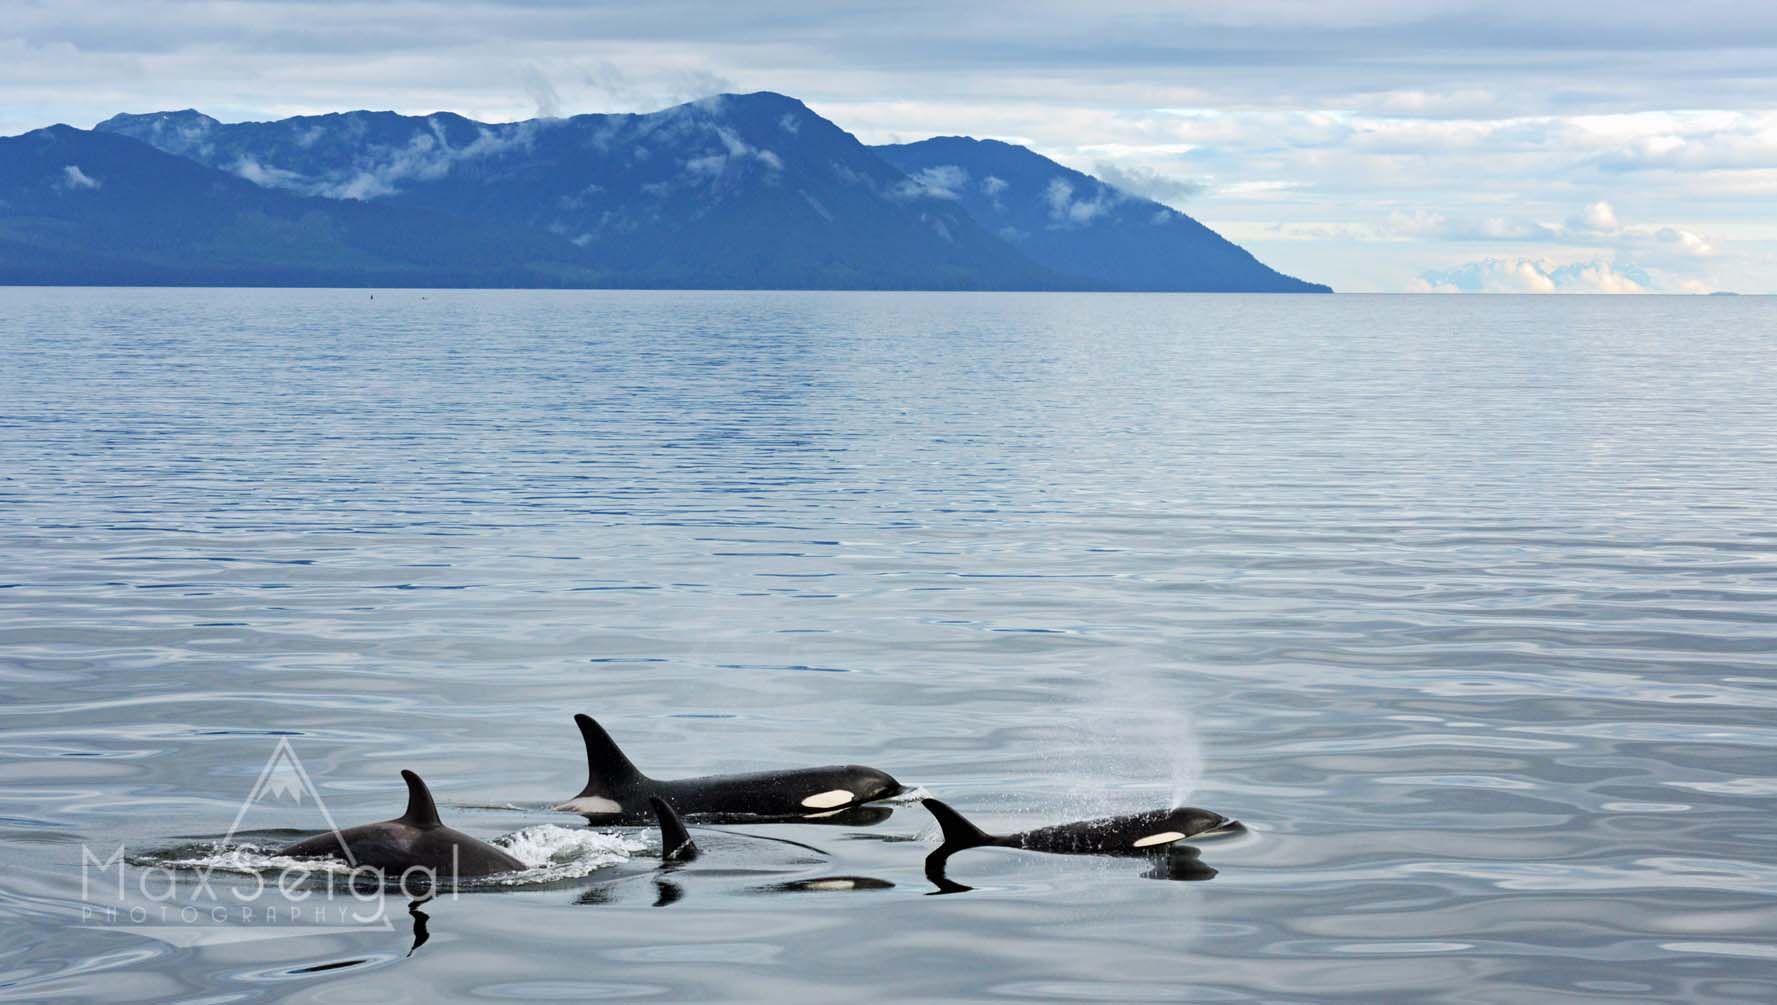 A family of killer whales passes by